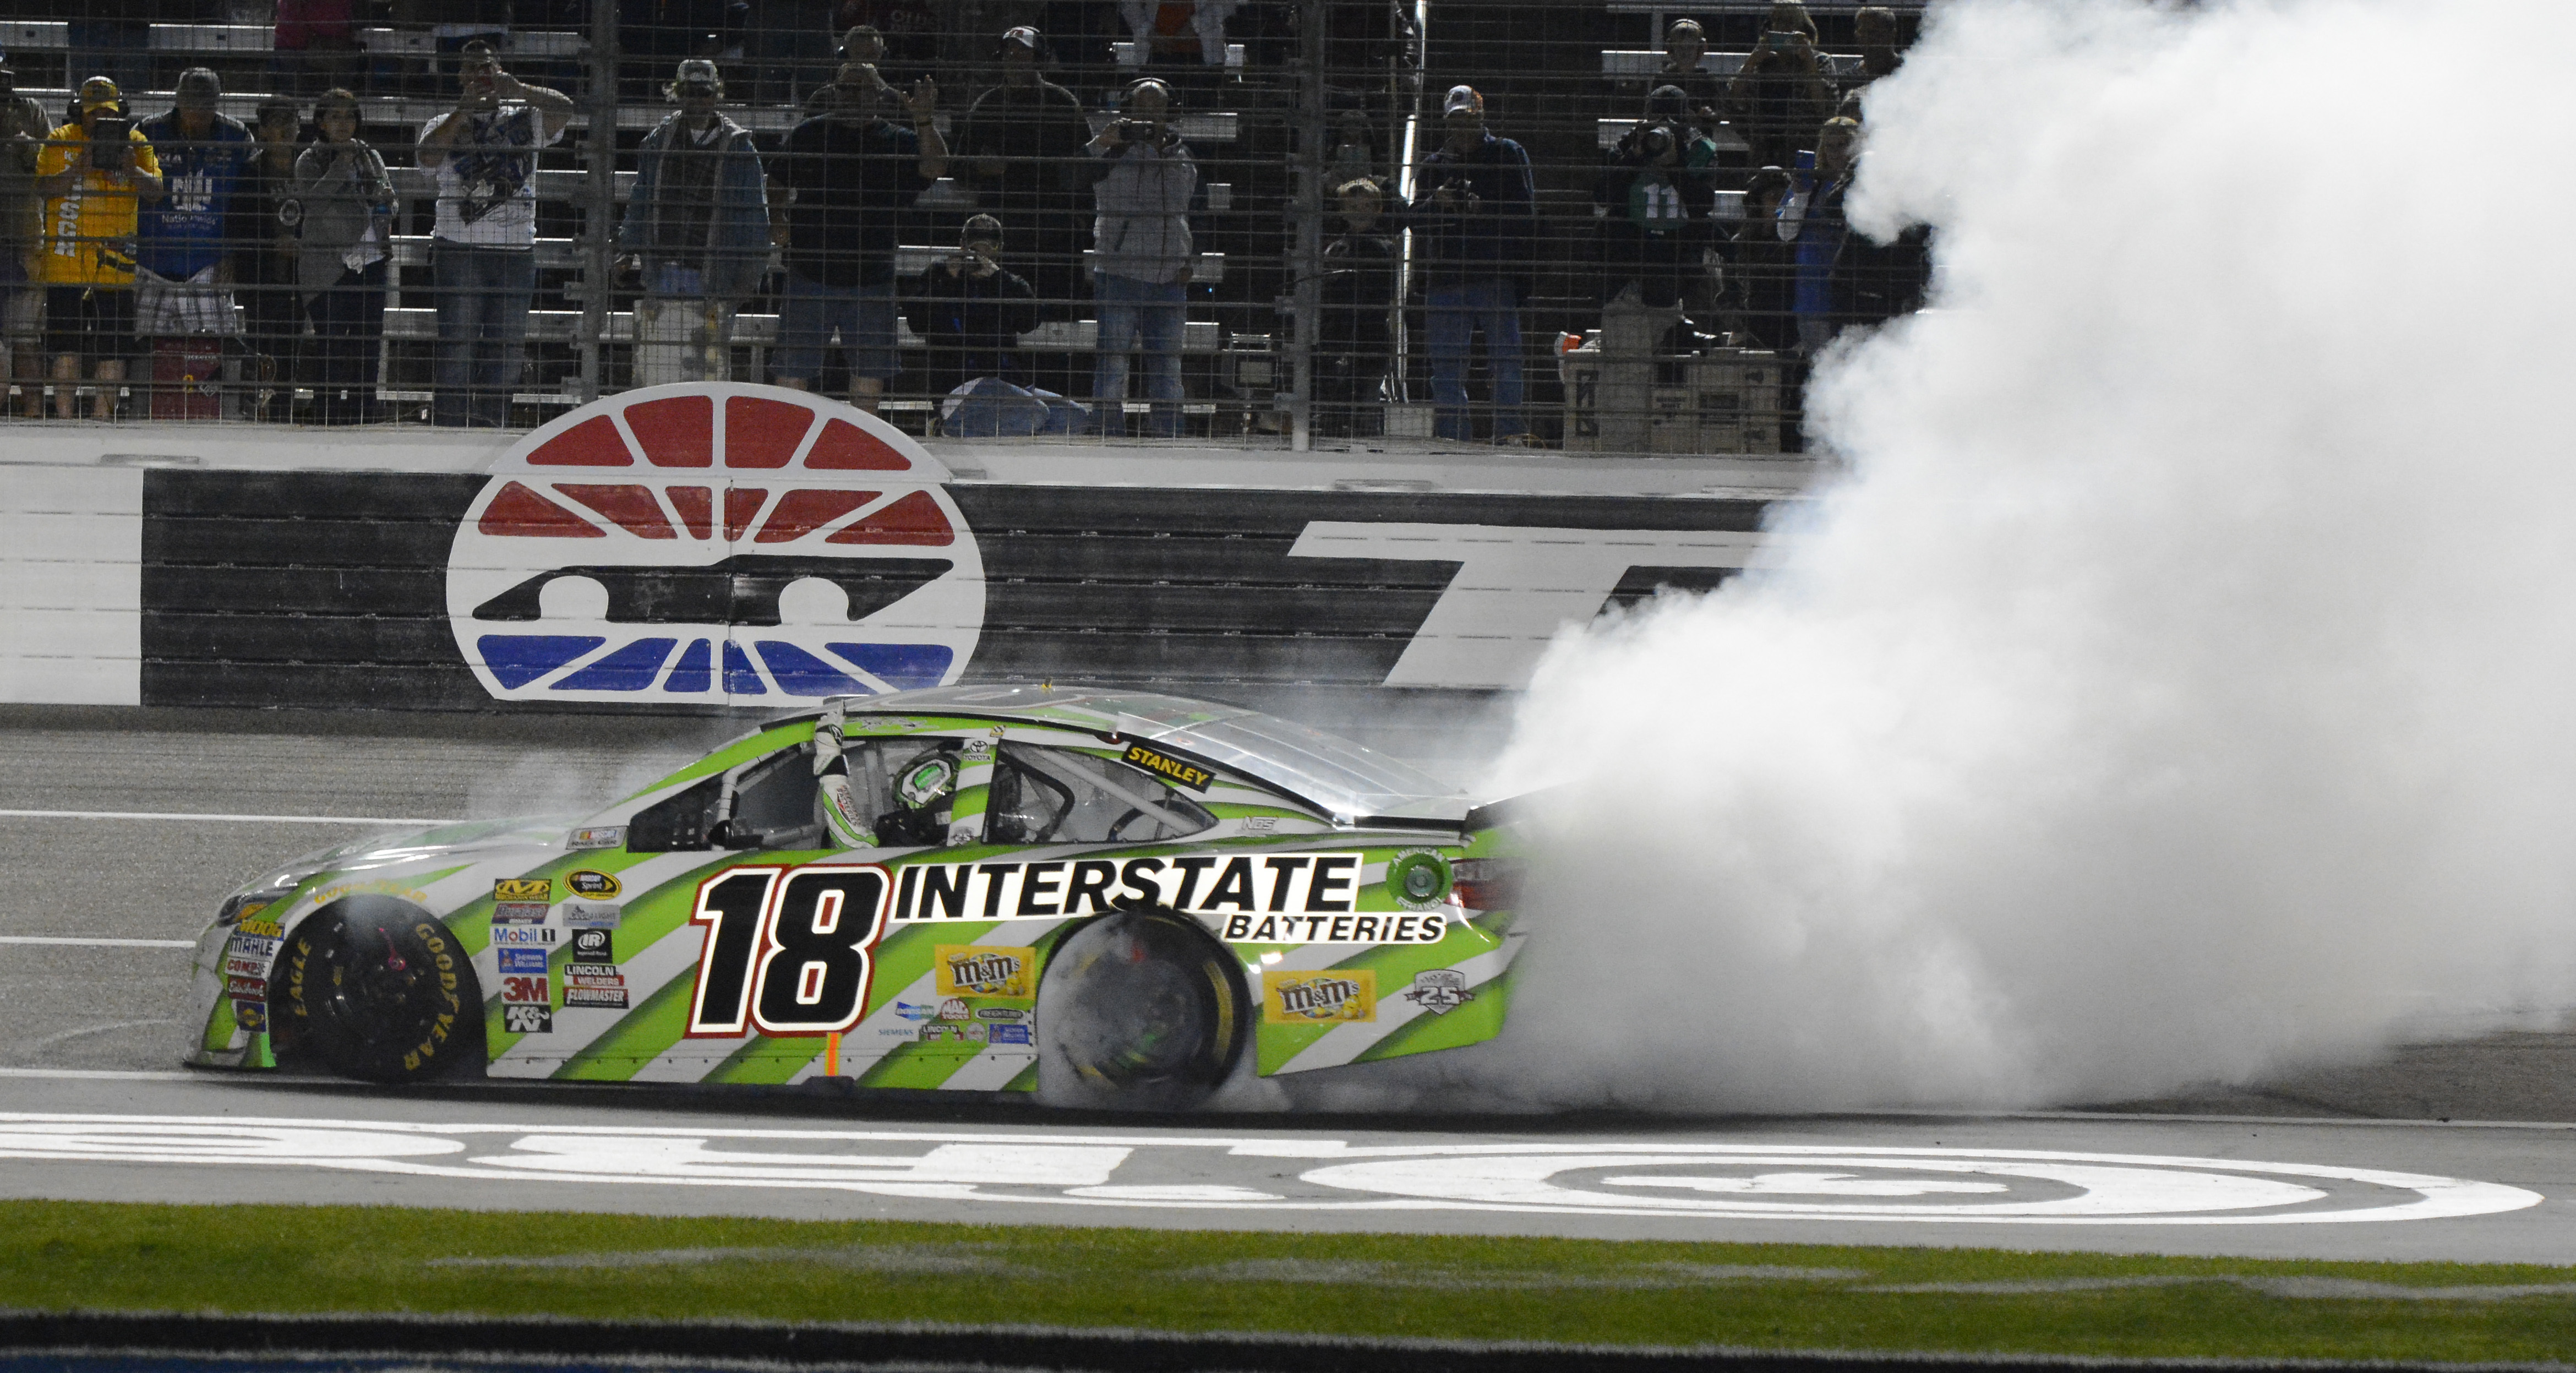 Kyle Busch does a burnout after winning the NASCAR Sprint Cup Series auto race at Texas Motor Speedway in Fort Worth, Texas, early Sunday, April 10, 2016. (AP Photo/Larry Papke)